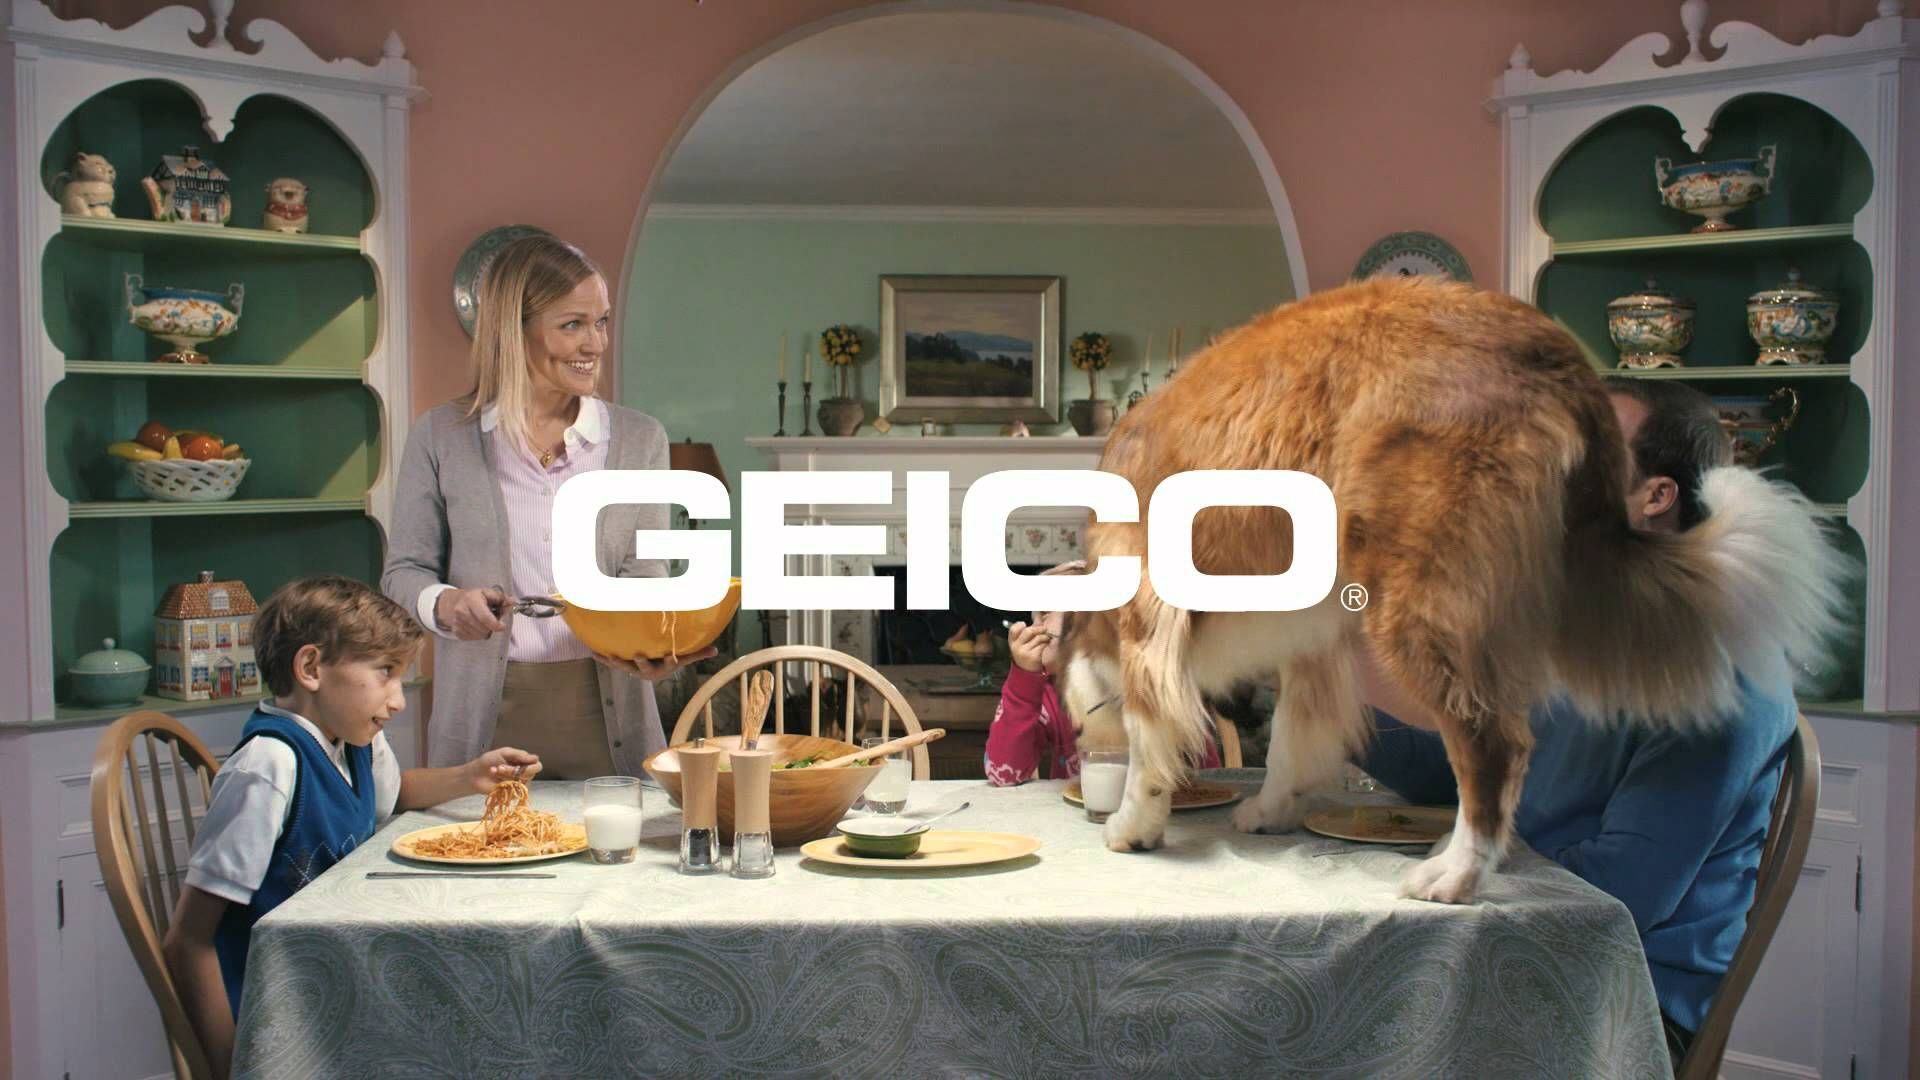 This is the weird Geico commercial that everyone is